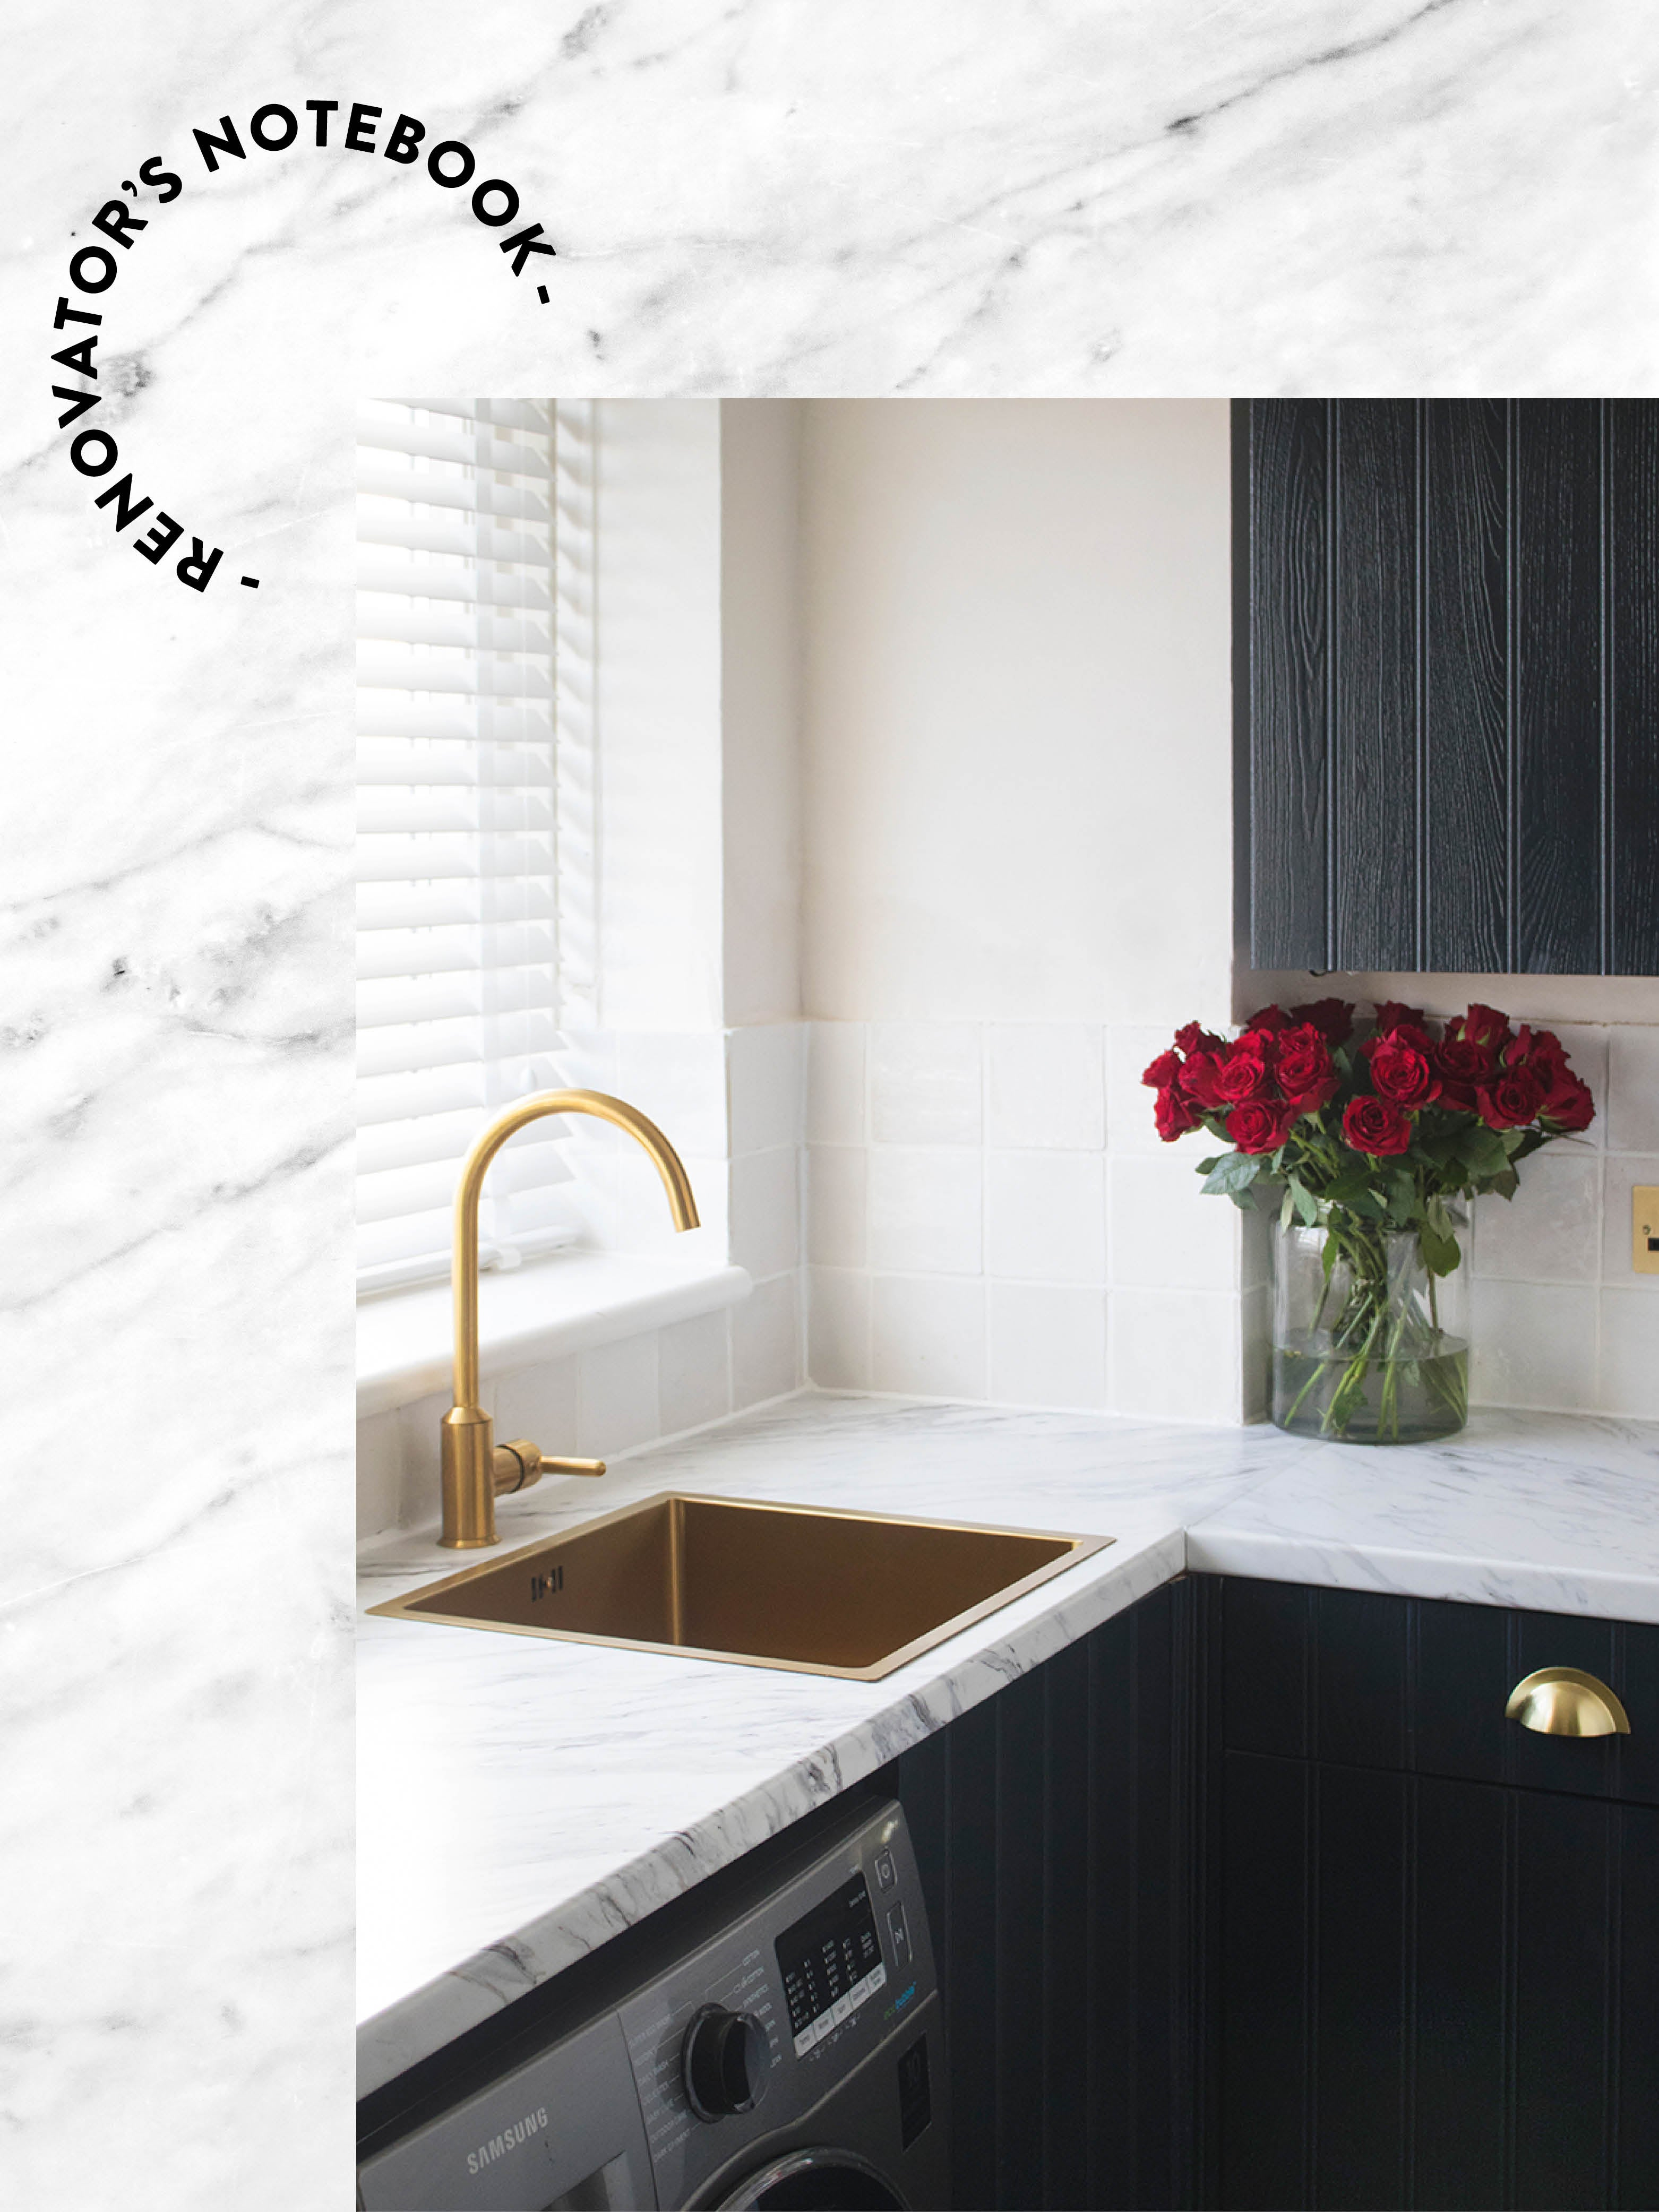 This $5K Kitchen Overhaul Makes a Convincing Case for Laminate Countertops